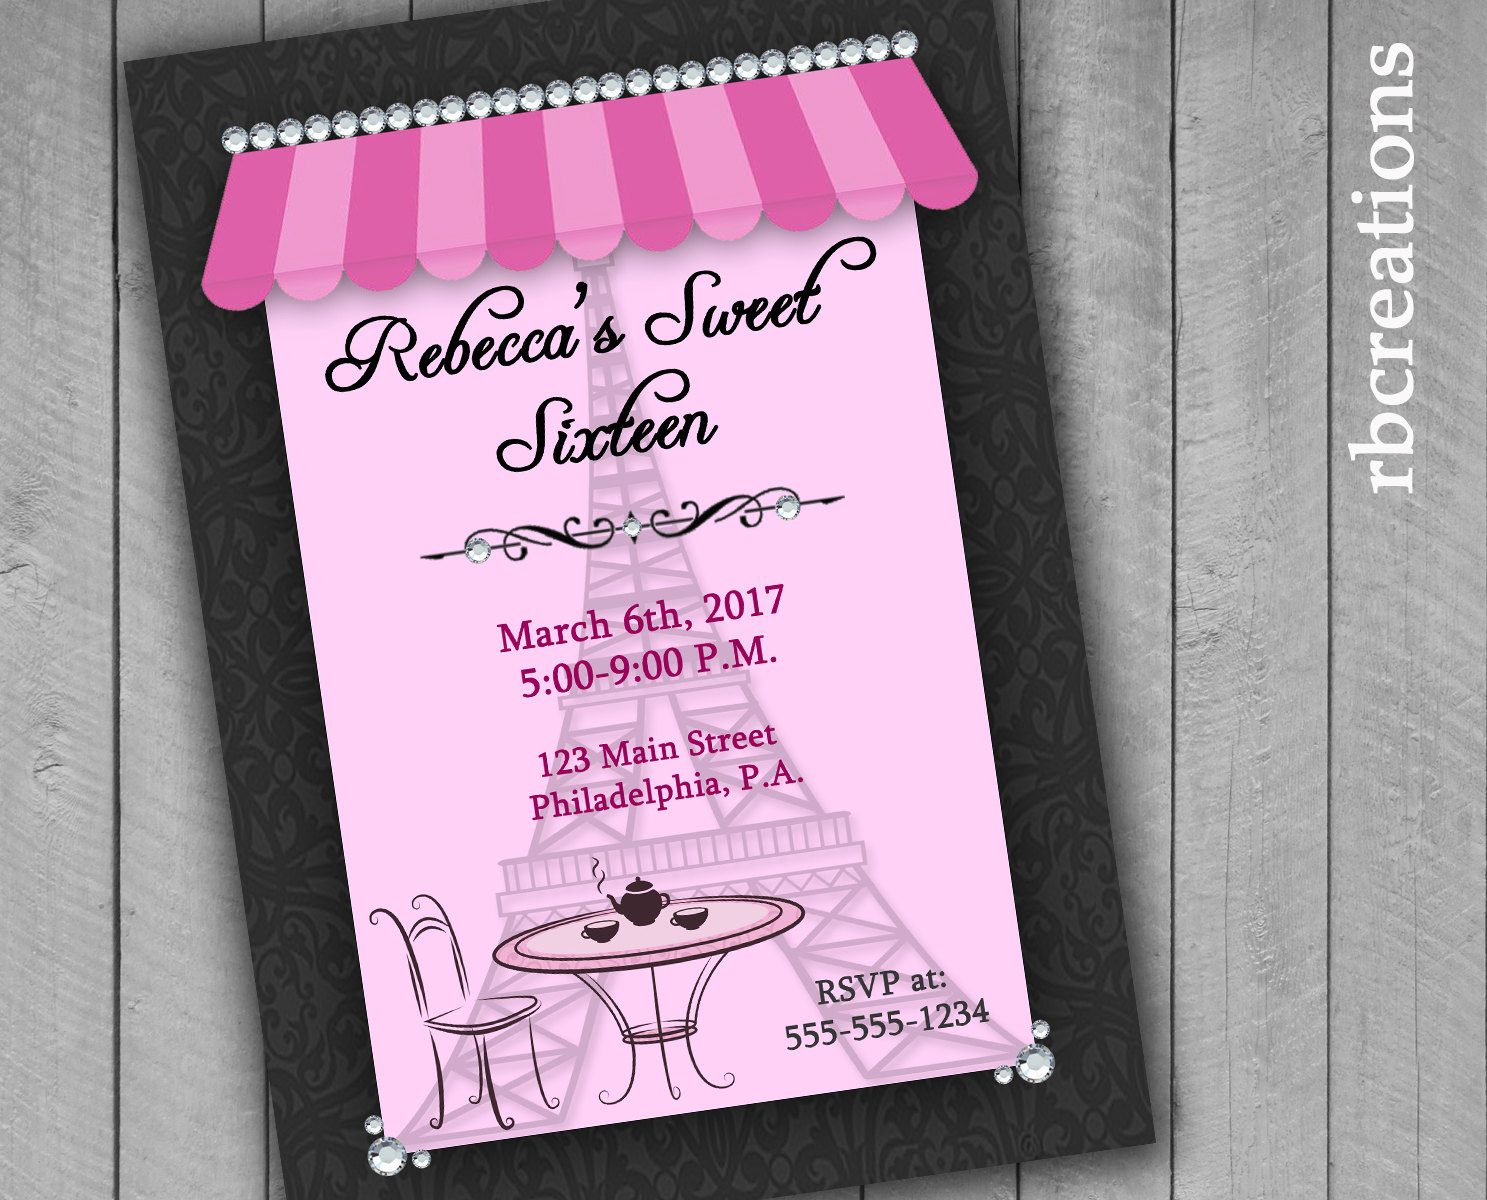 Sweet sixteen party invitations paris party paris sweet sixteen sweet sixteen party invitations paris party paris sweet sixteen invitation paris birthday paris sweet sixteen party digital printables solutioingenieria Choice Image